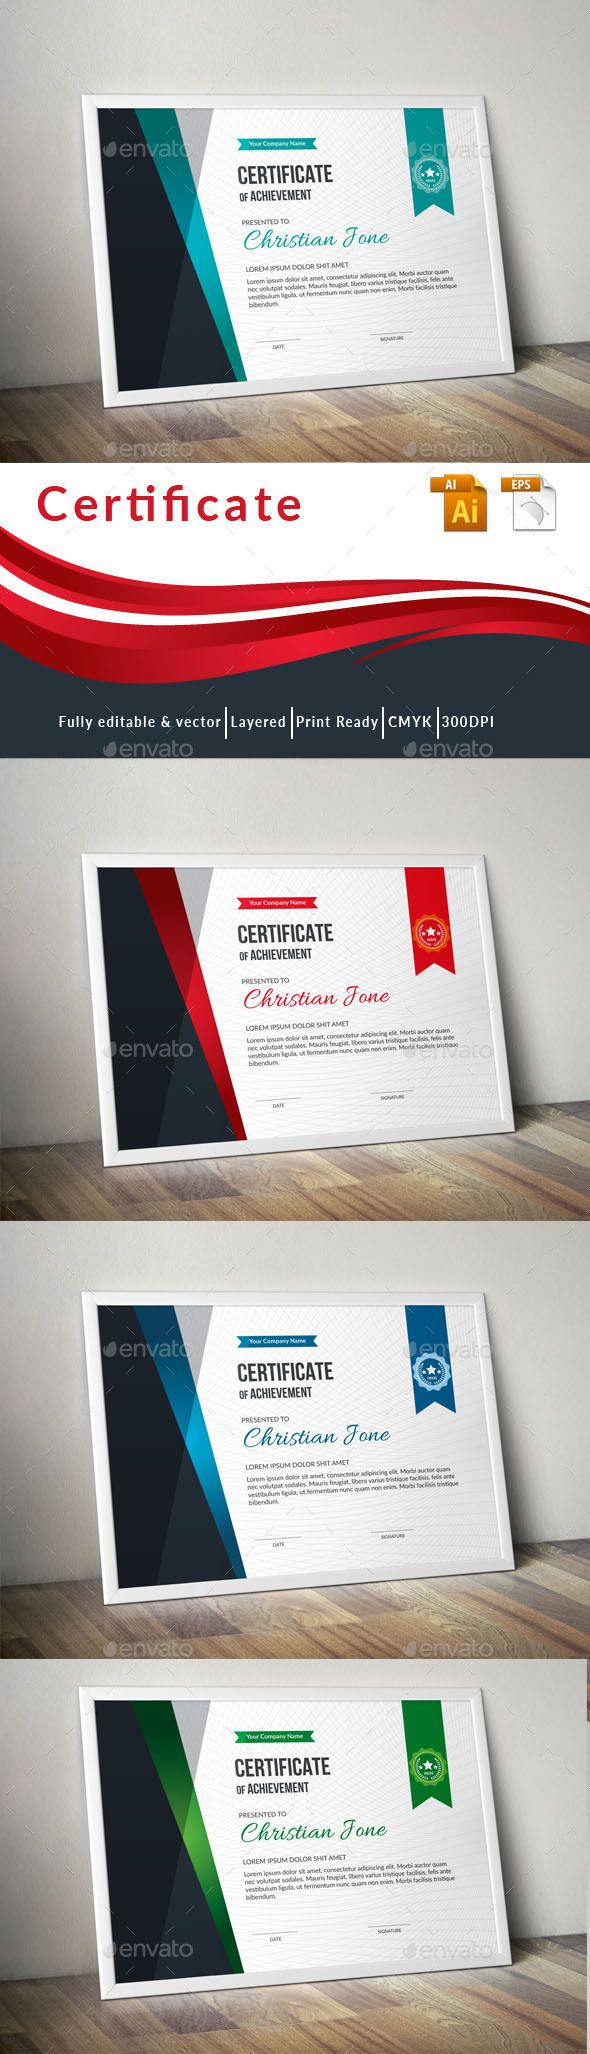 #Certificate - Calendars Stationery Download here: https://graphicriver.net/item/certificate/19521079?ref=alena994